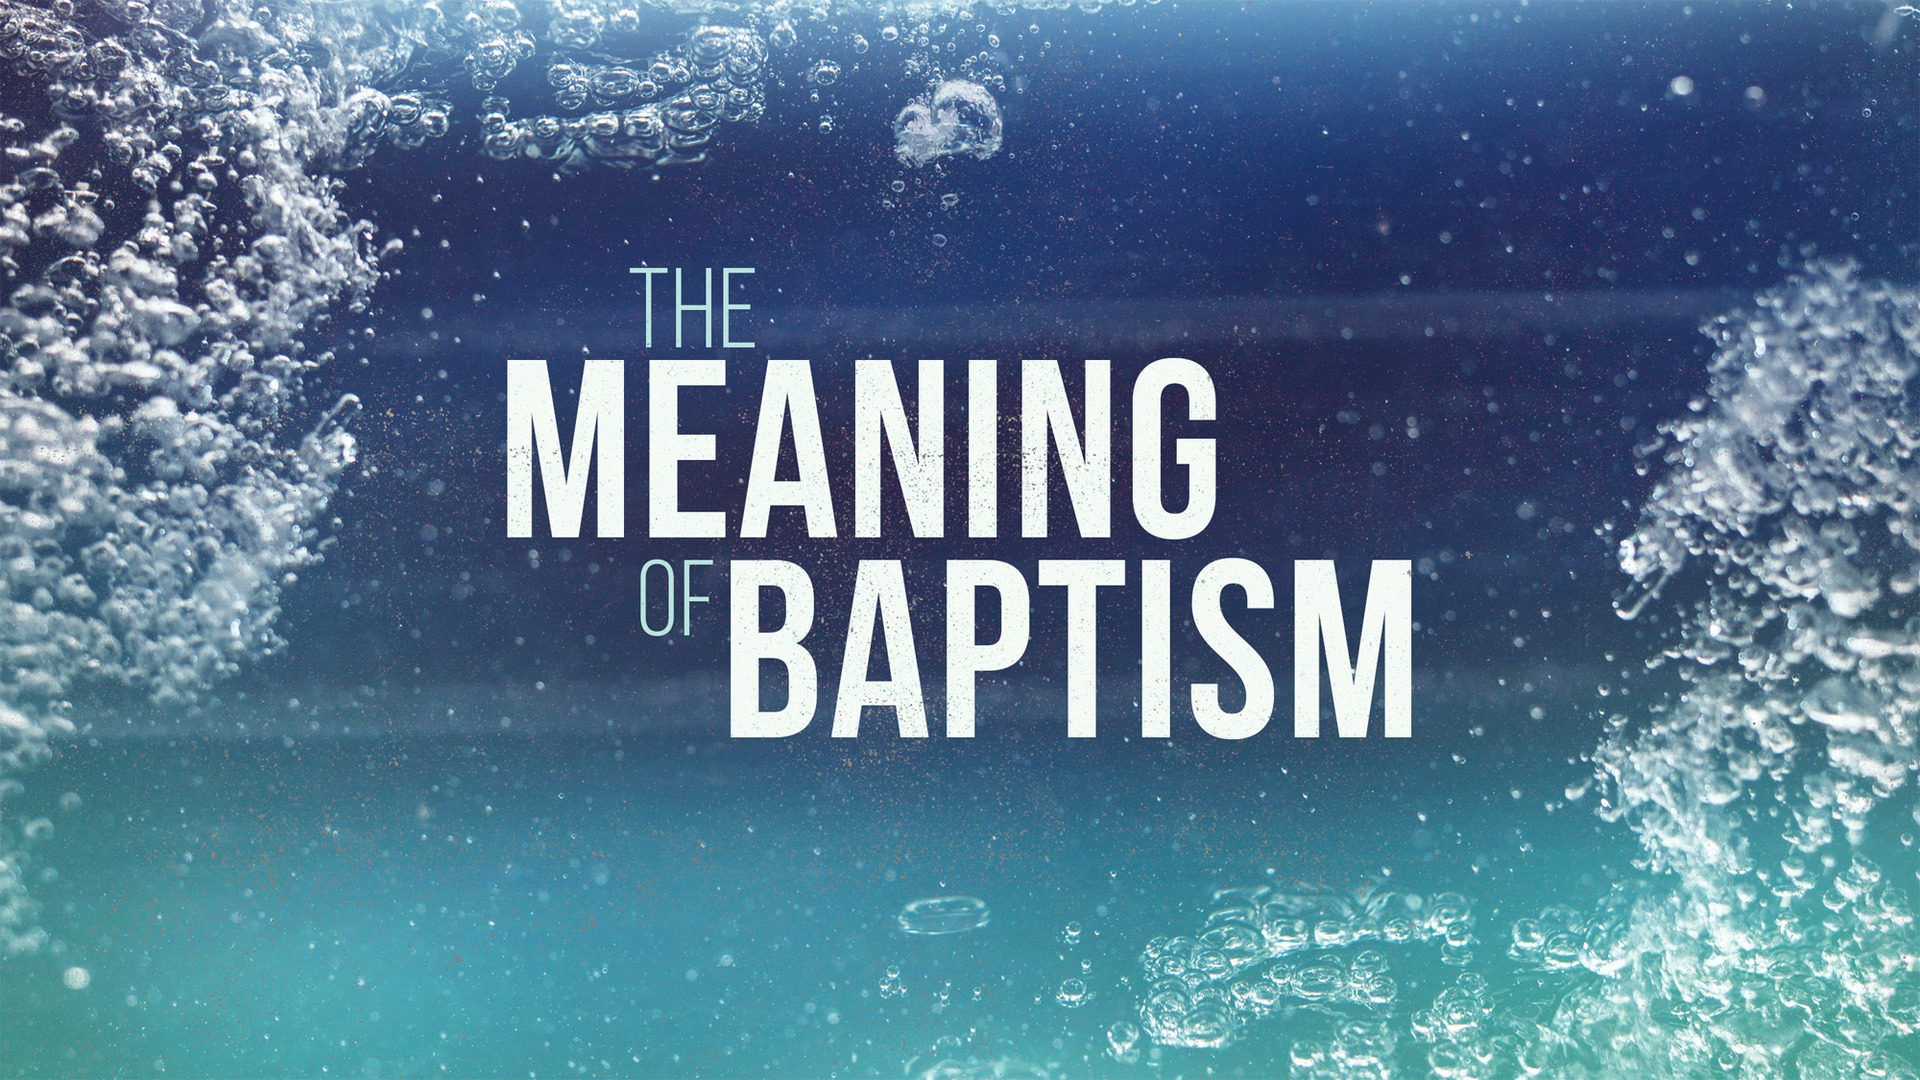 Sunday October 8, 2017 The Meaning Of Baptism - Pastor Anthony Cox